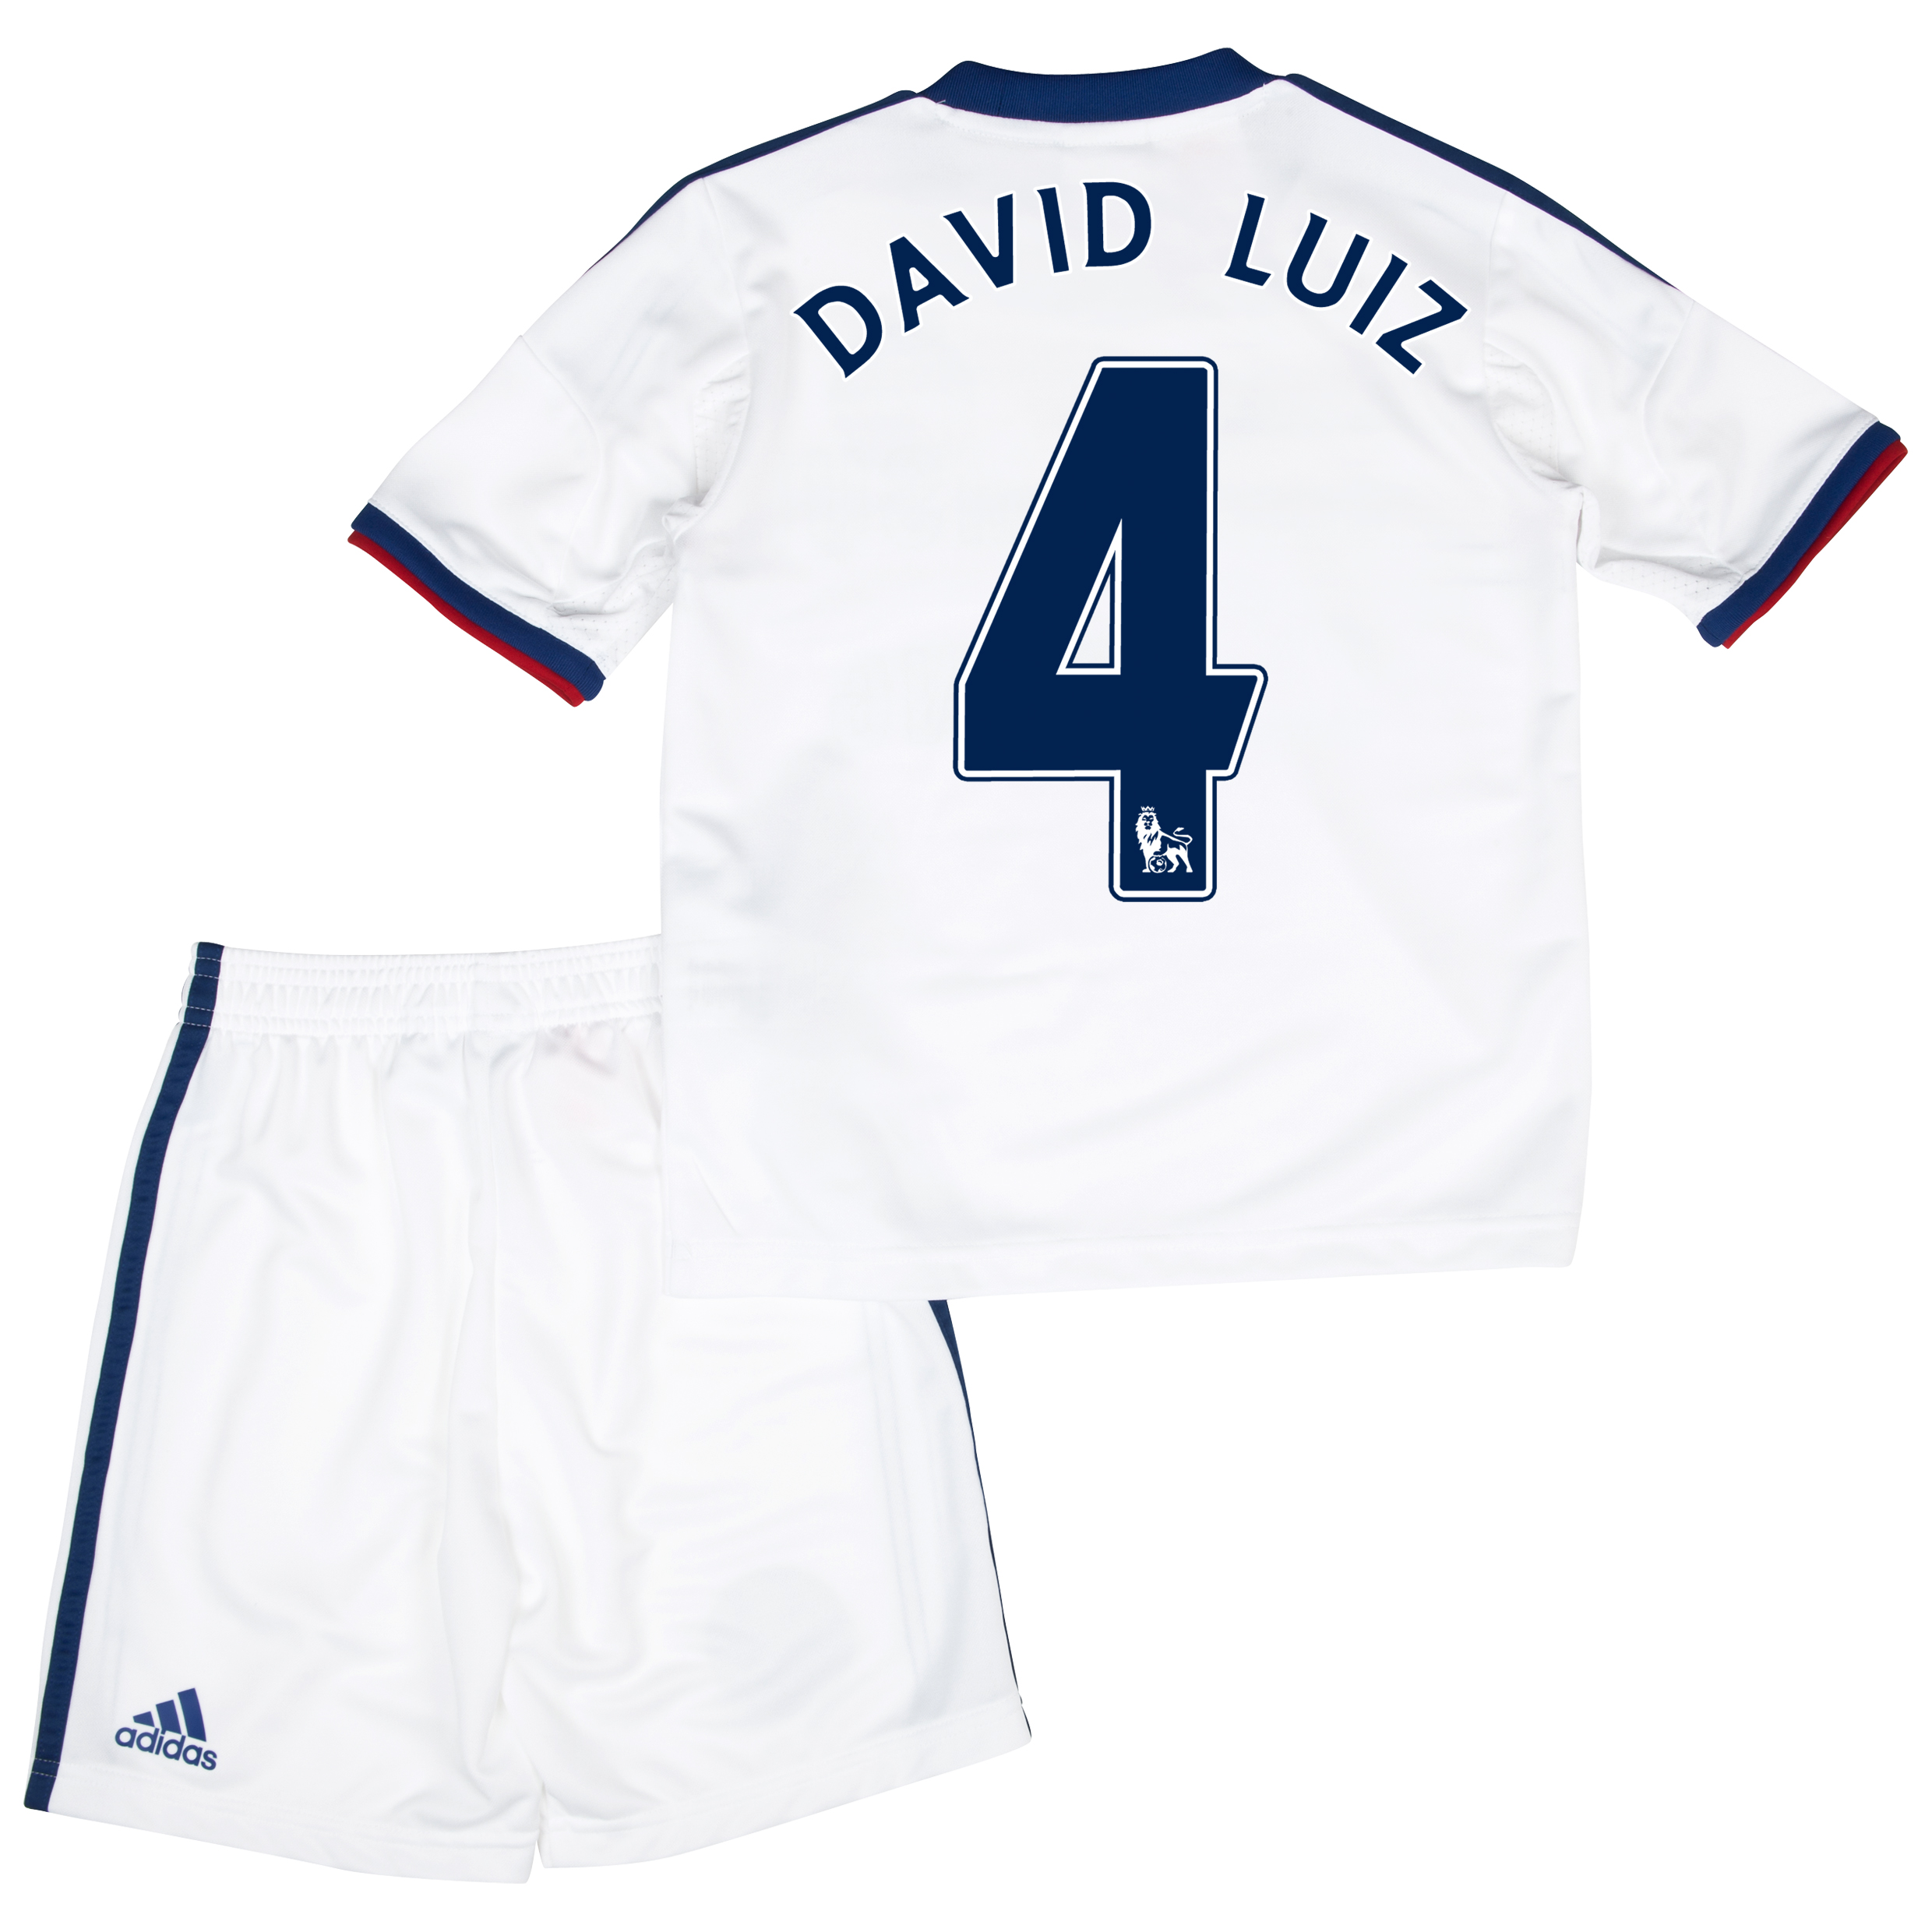 Chelsea Away Mini Kit 2013/14 with David Luiz 4 printing